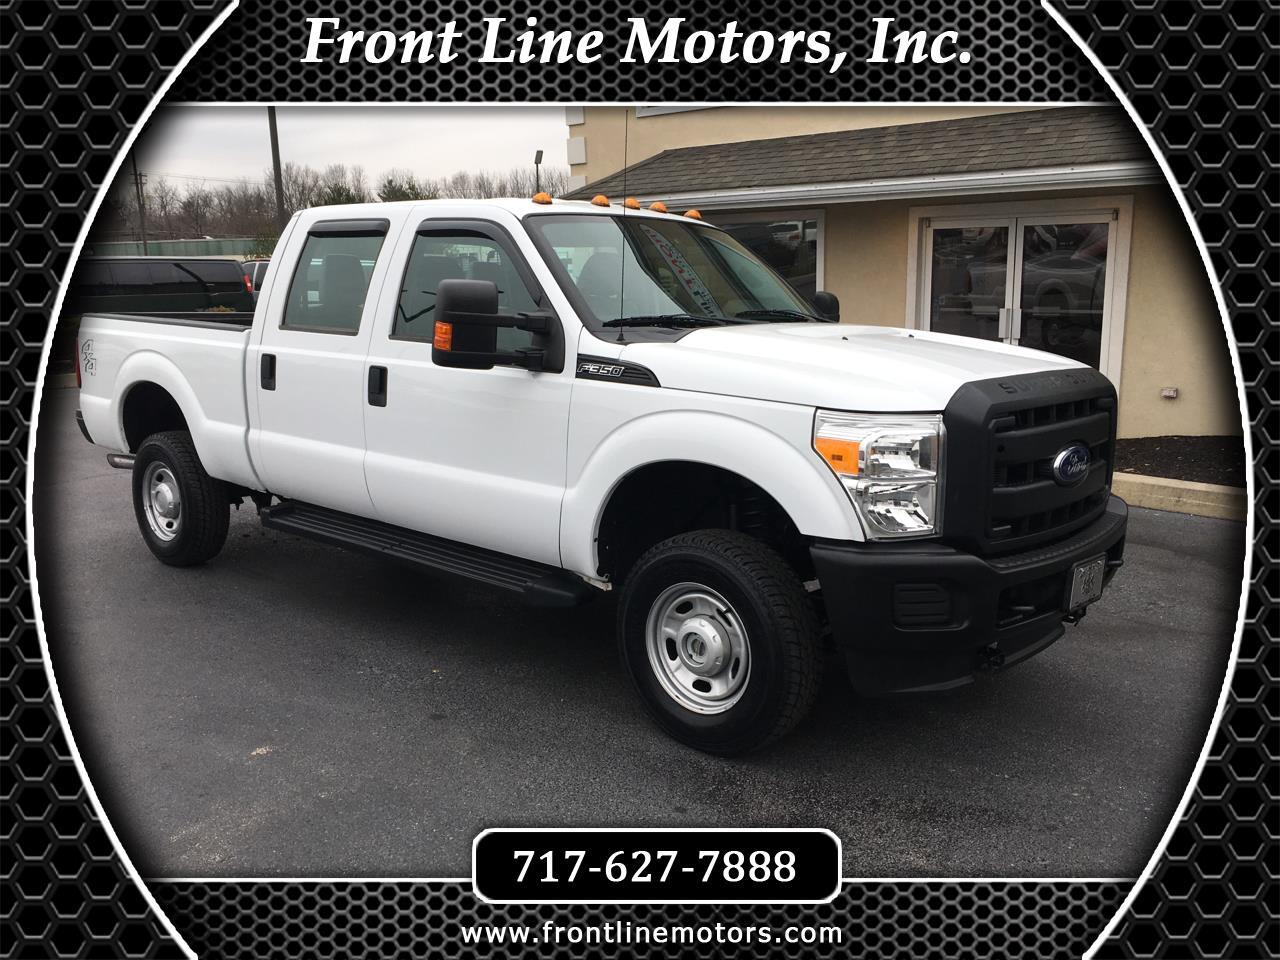 2014 Ford Super Duty F-350 SRW 4WD Crew Cab 156